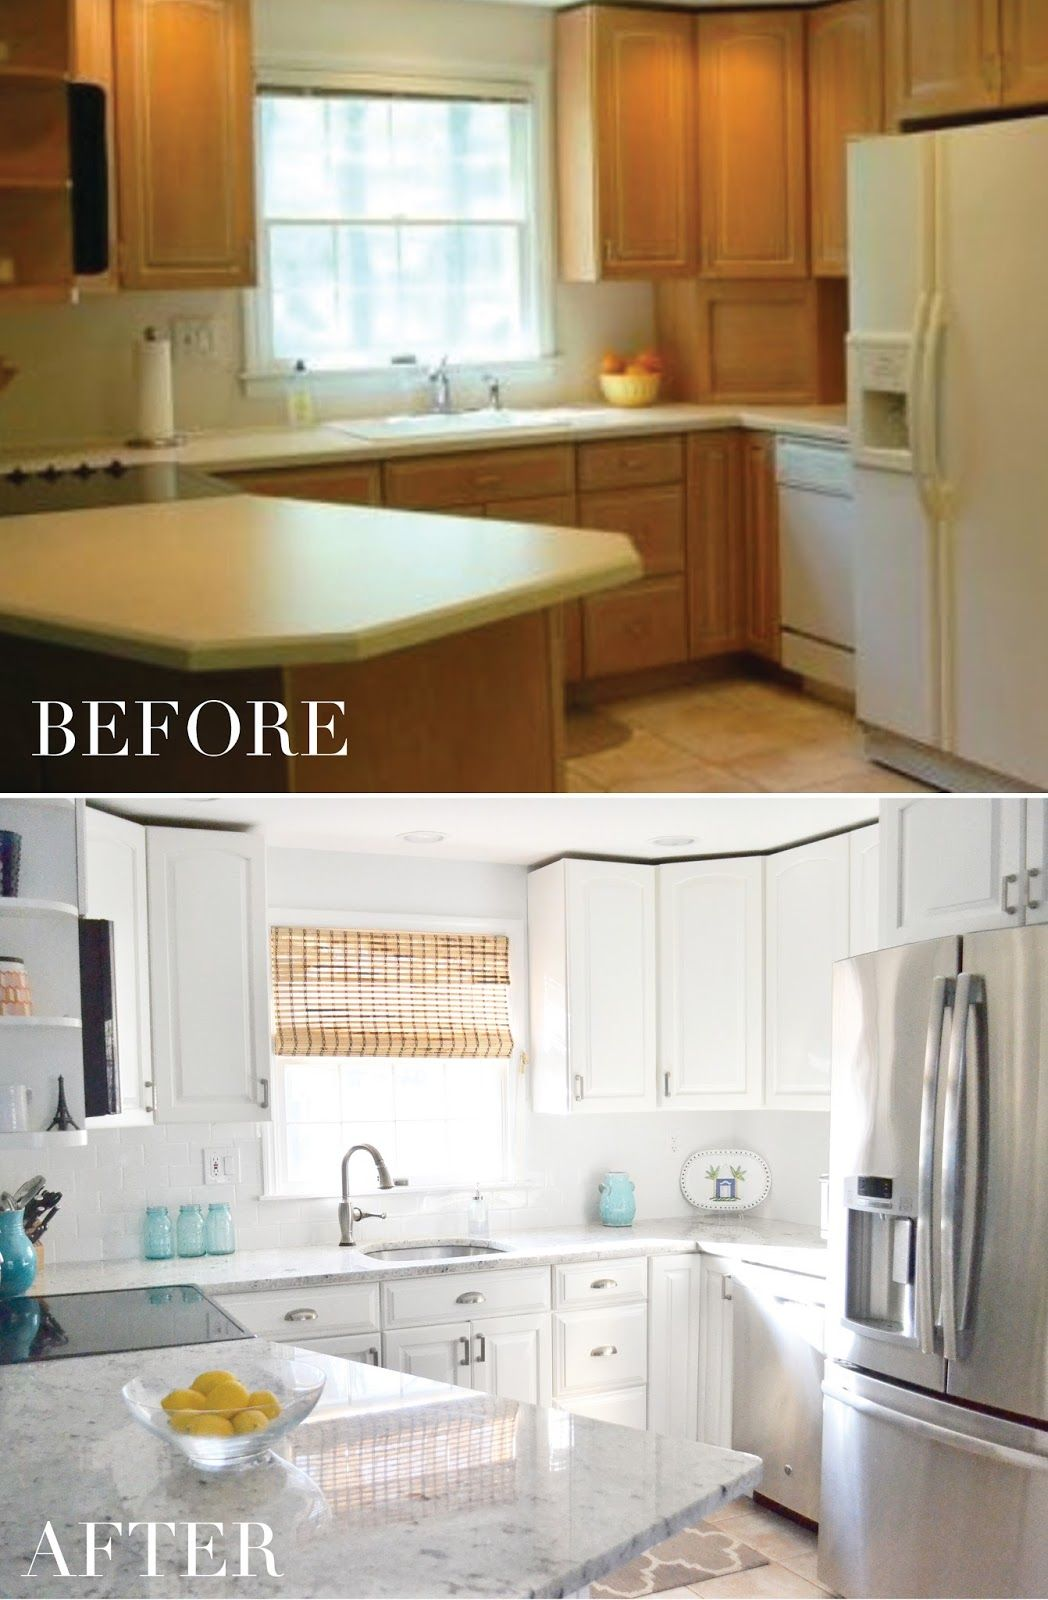 A budgetfriendly kitchen transformation from dull TO